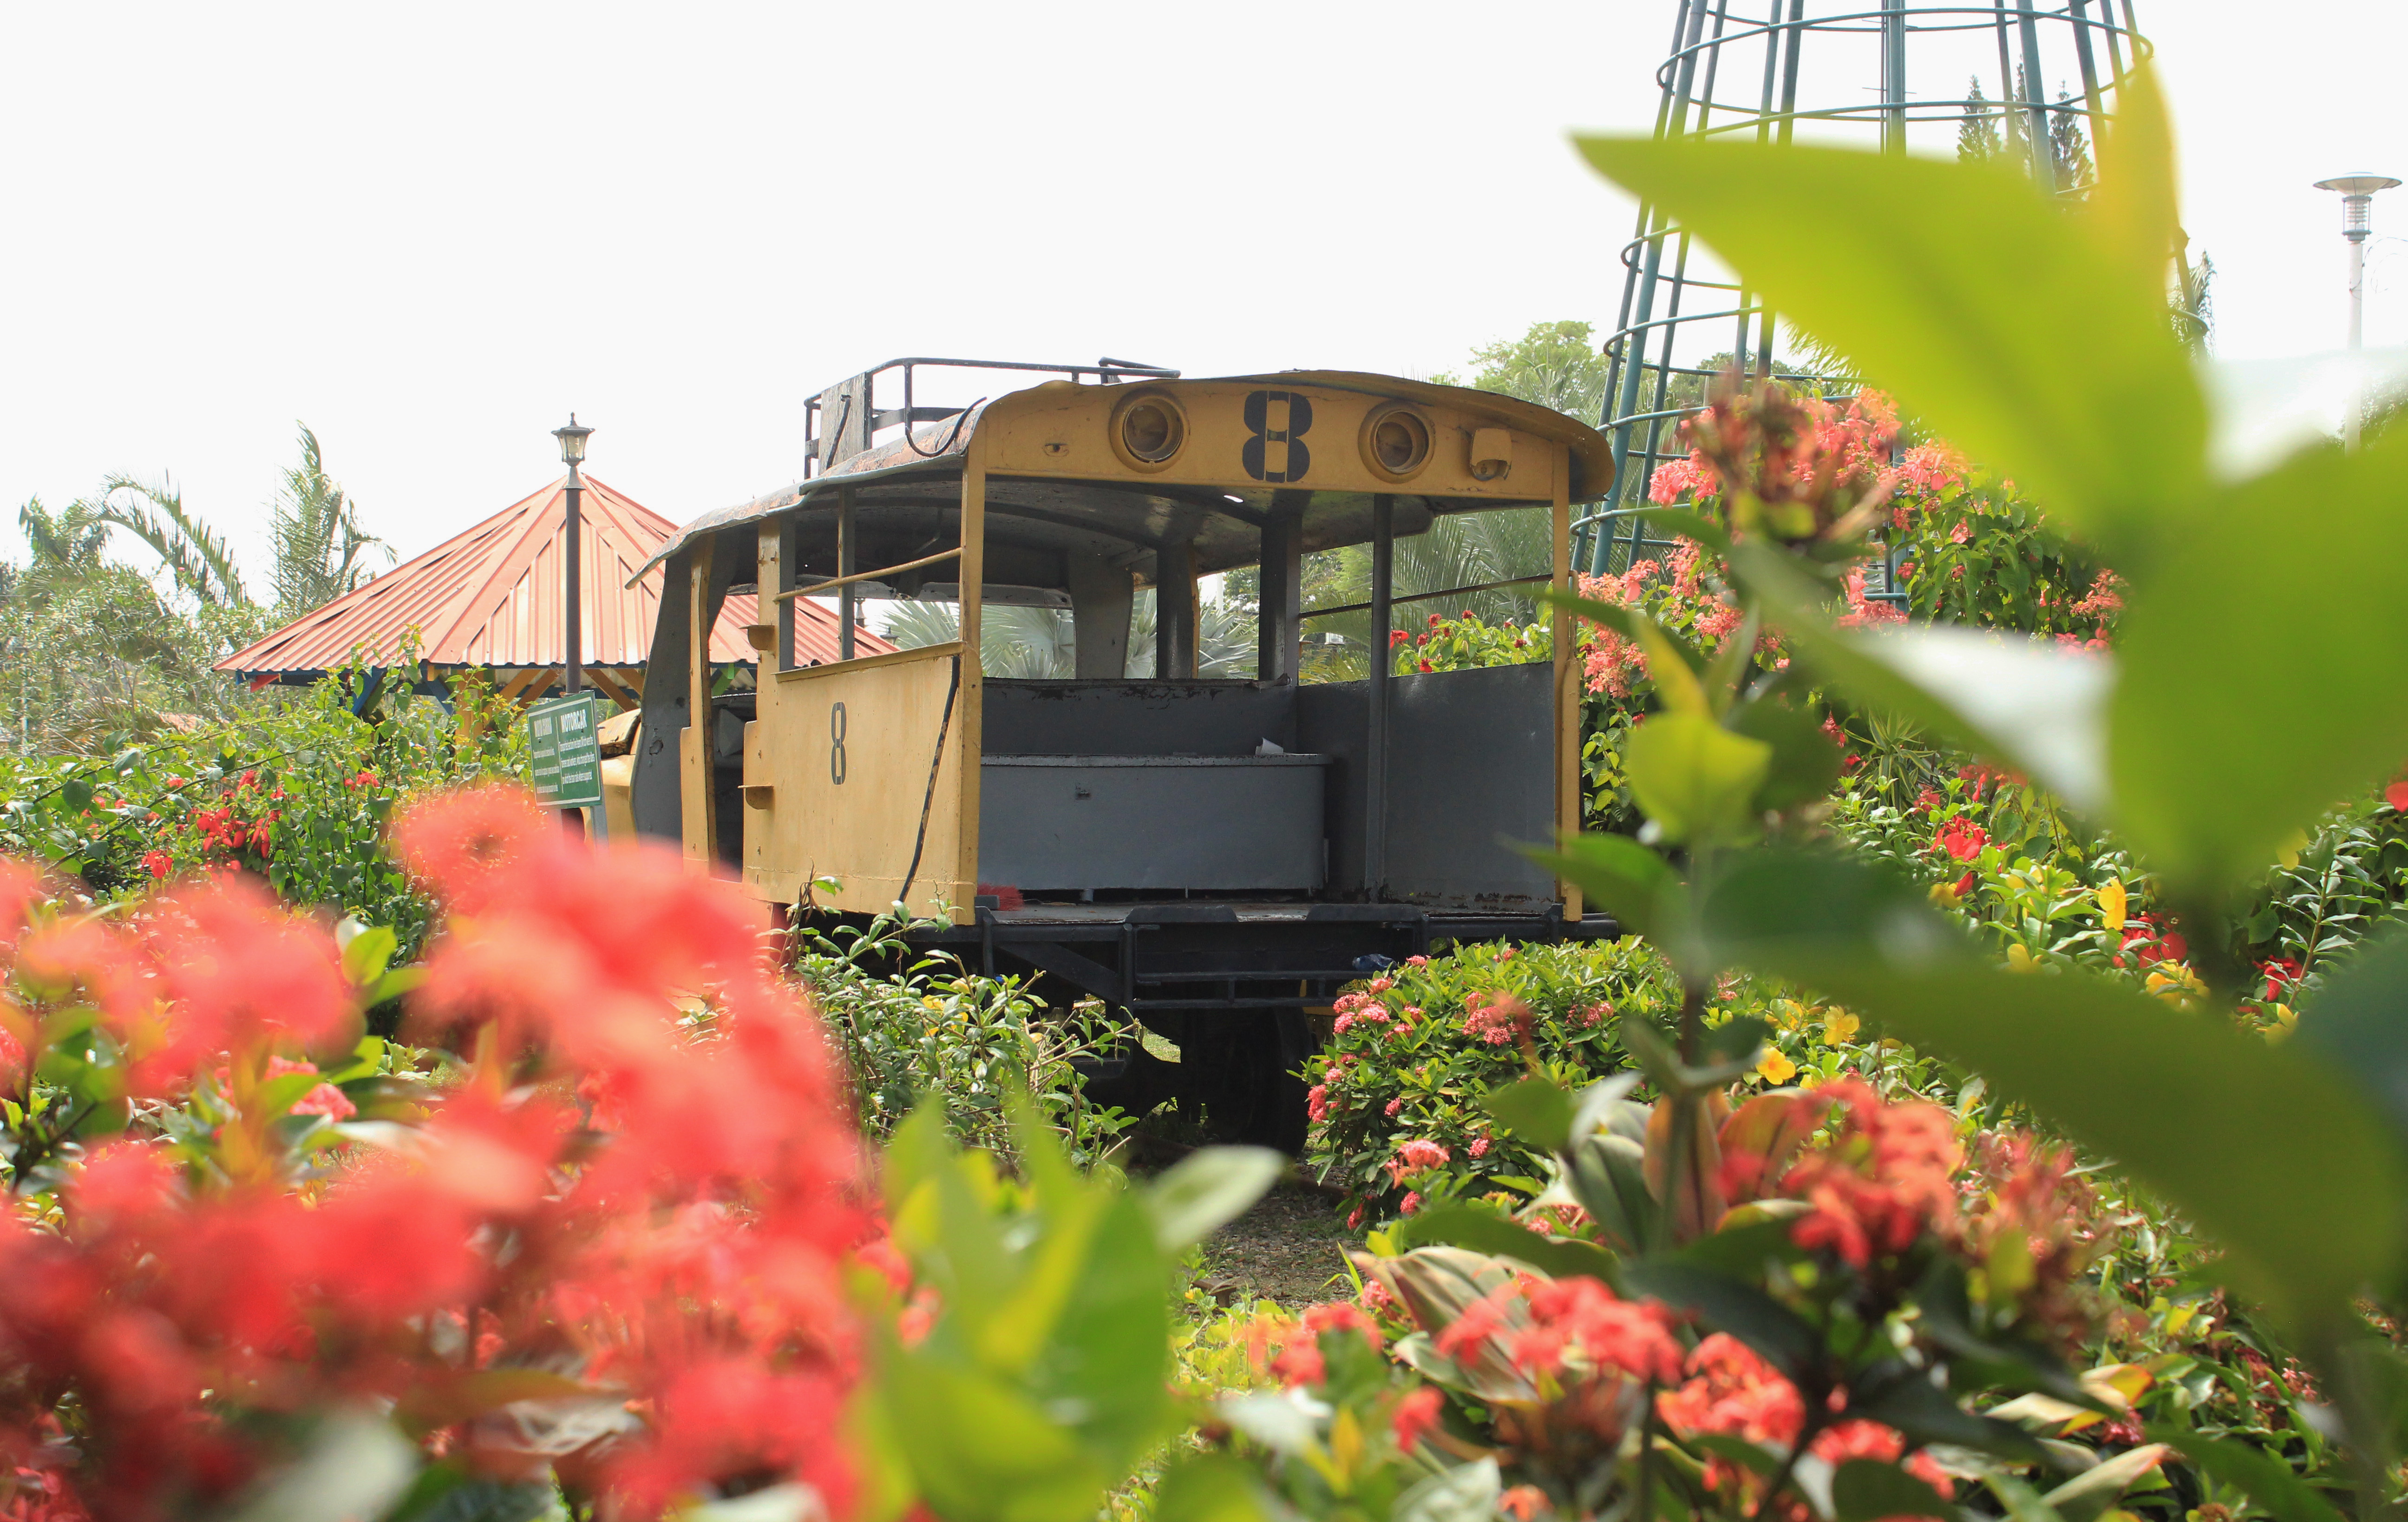 The Progreso Railway Museum in El Progreso is devoted to railways that were built, then dismantled by banana companies. Some residents celebrate children's birthday parties here. (María José Burgos/CBC)